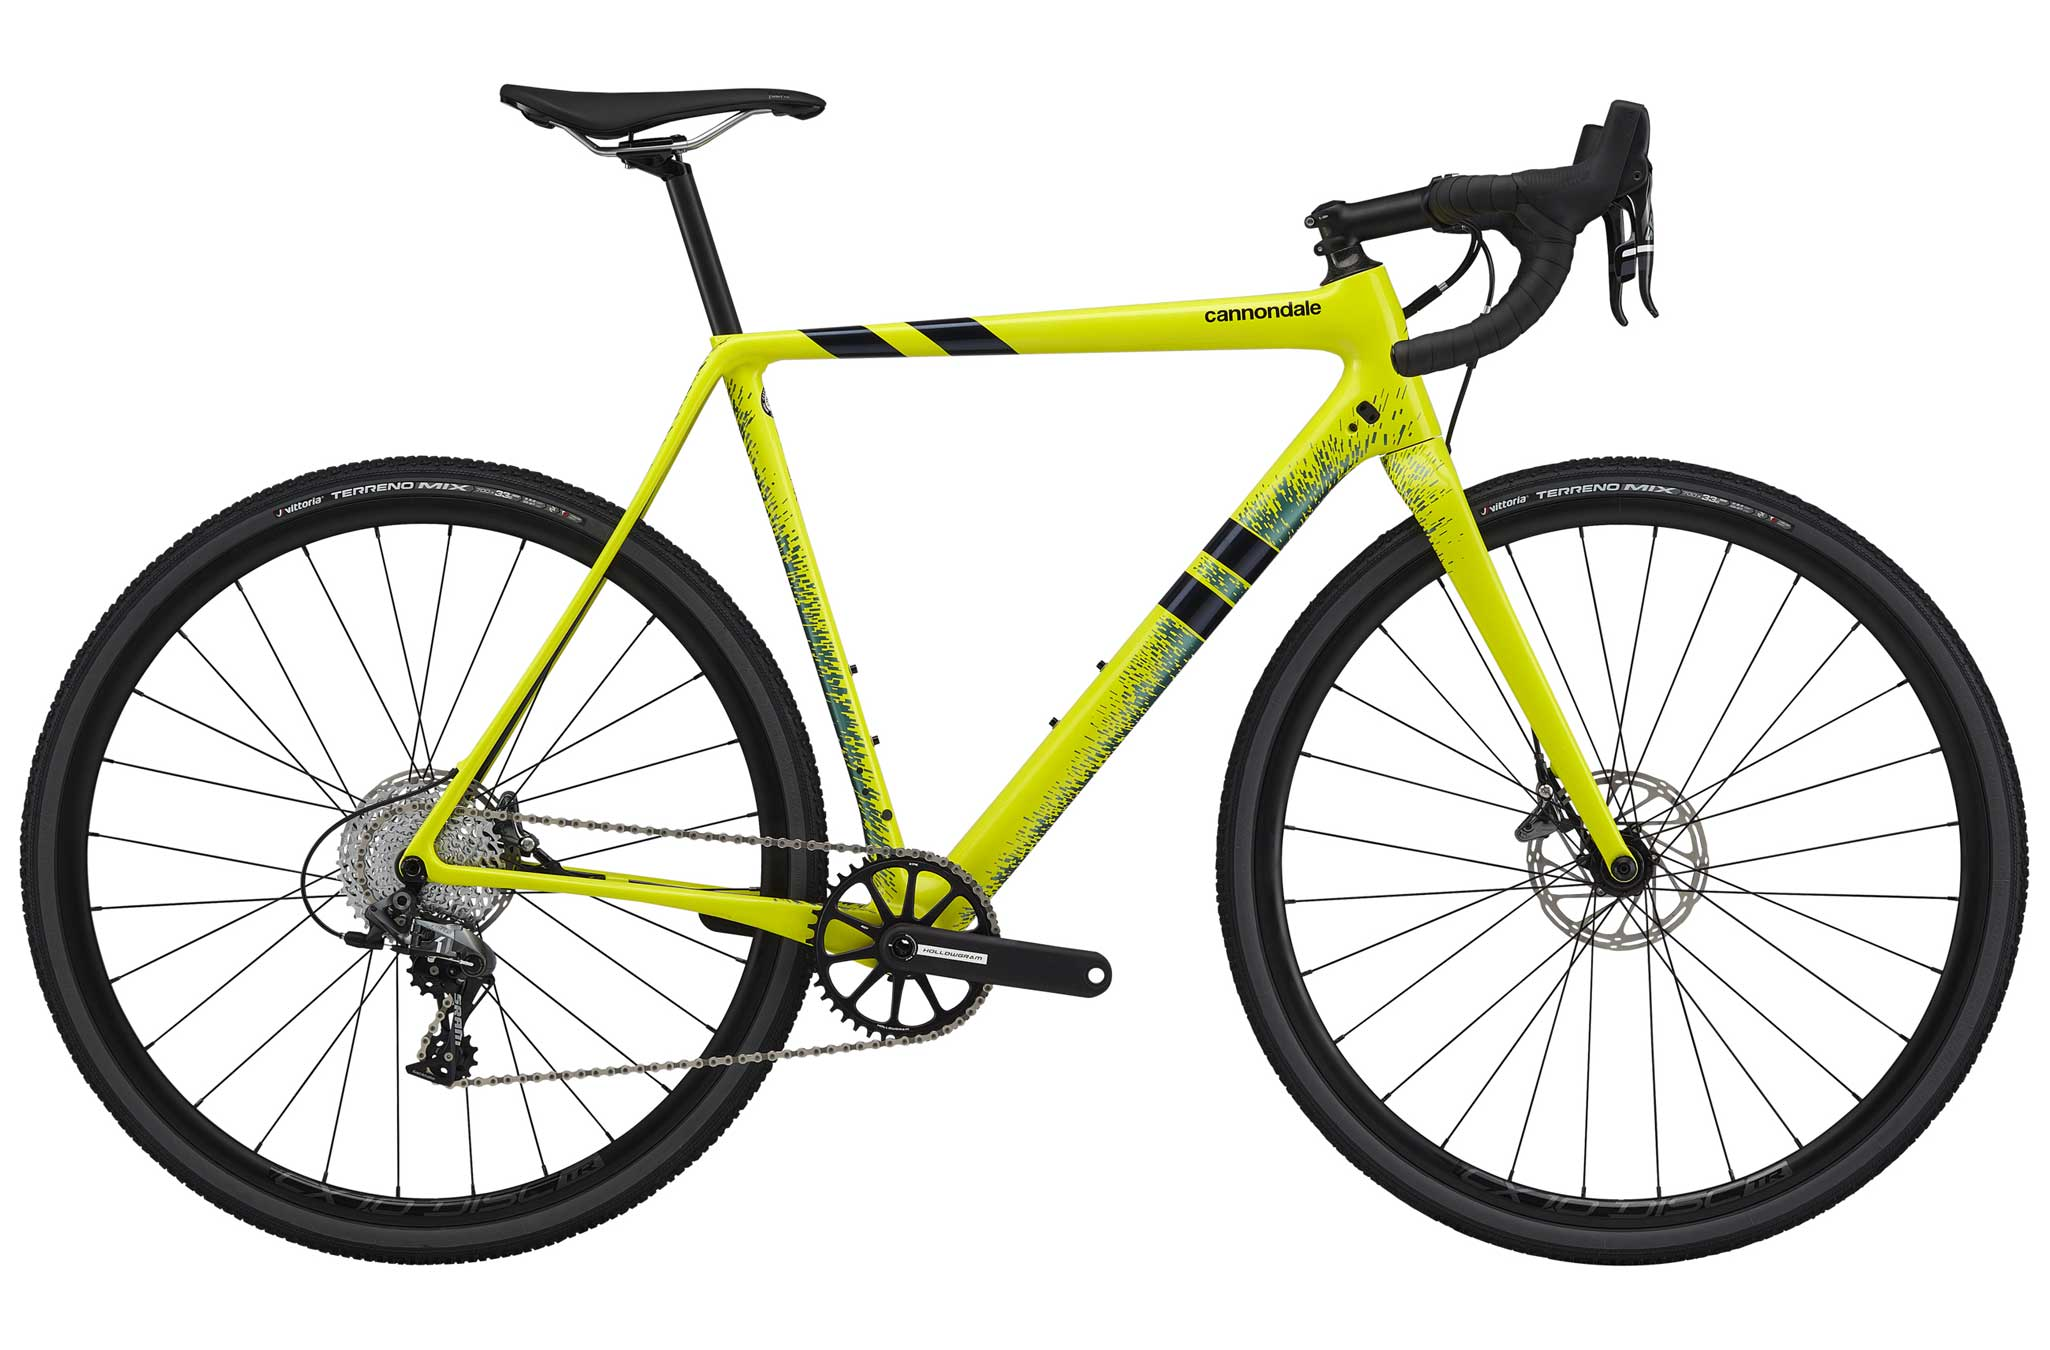 cannondale-superx-f1-2020-cyclocross-bike-yellow